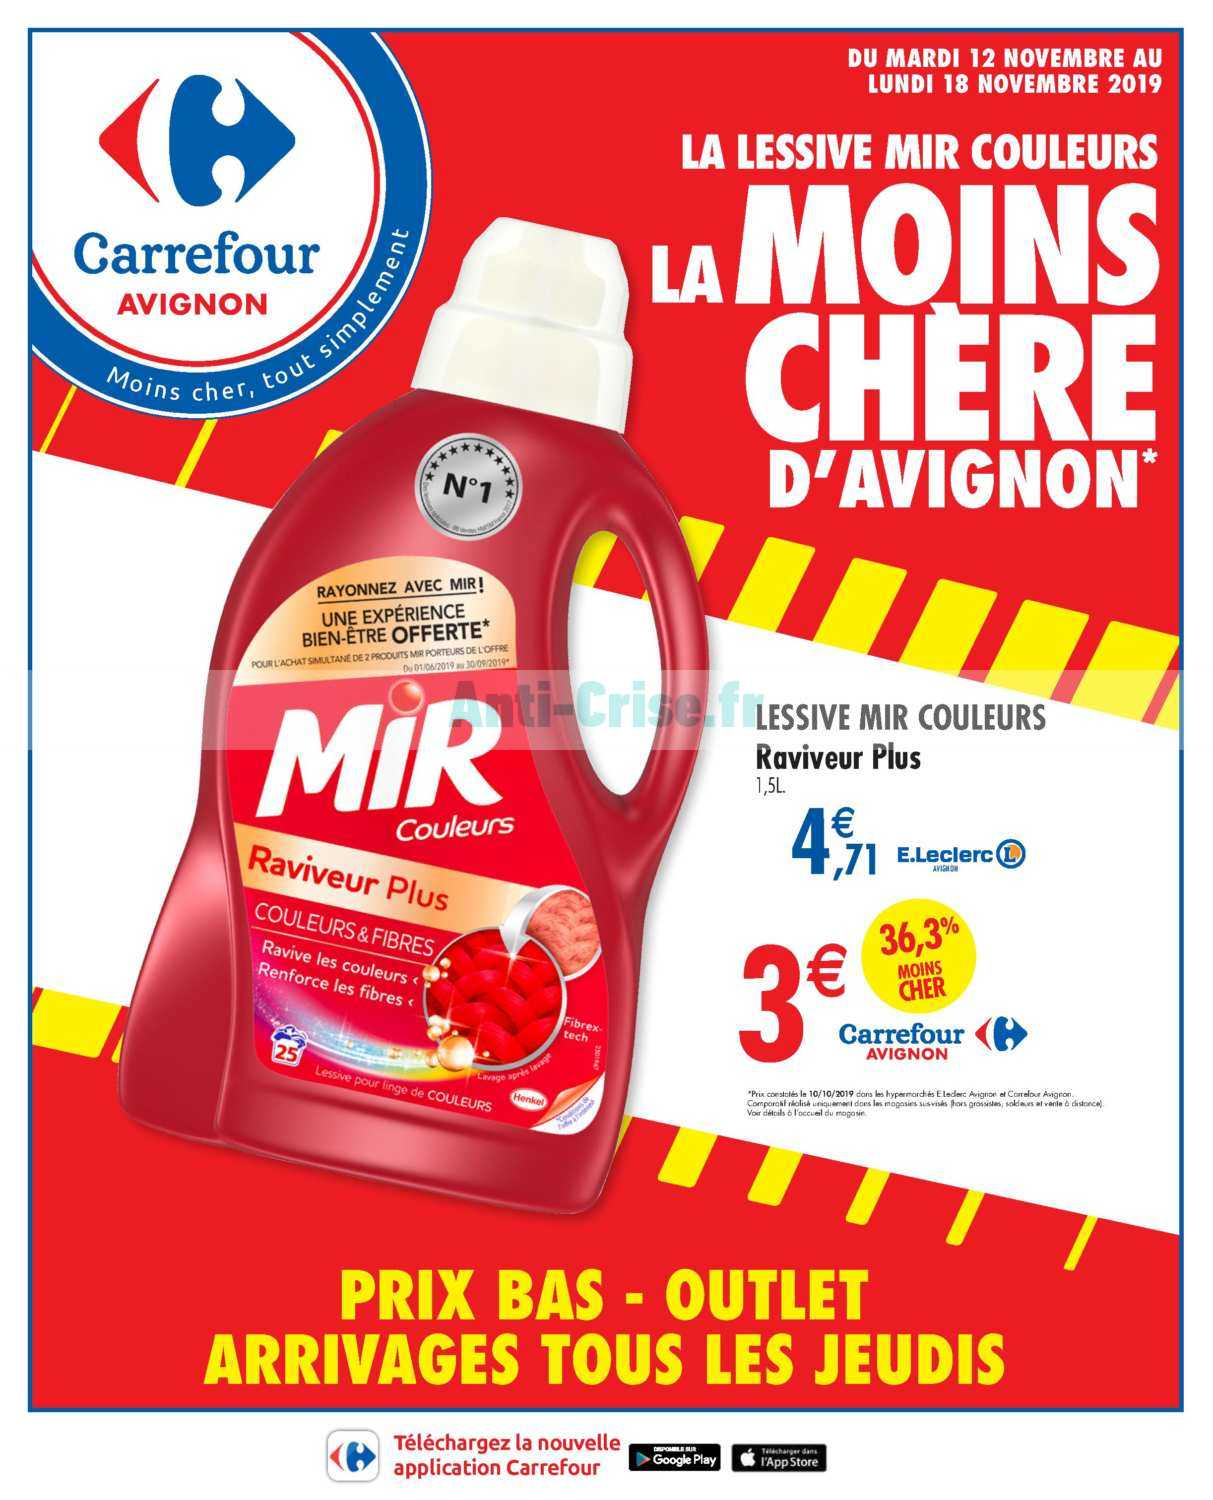 https://media.anti-crise.fr/2019/11/novembre2019carrefour1211201918112019S0C0avignon-1-243x300.jpg